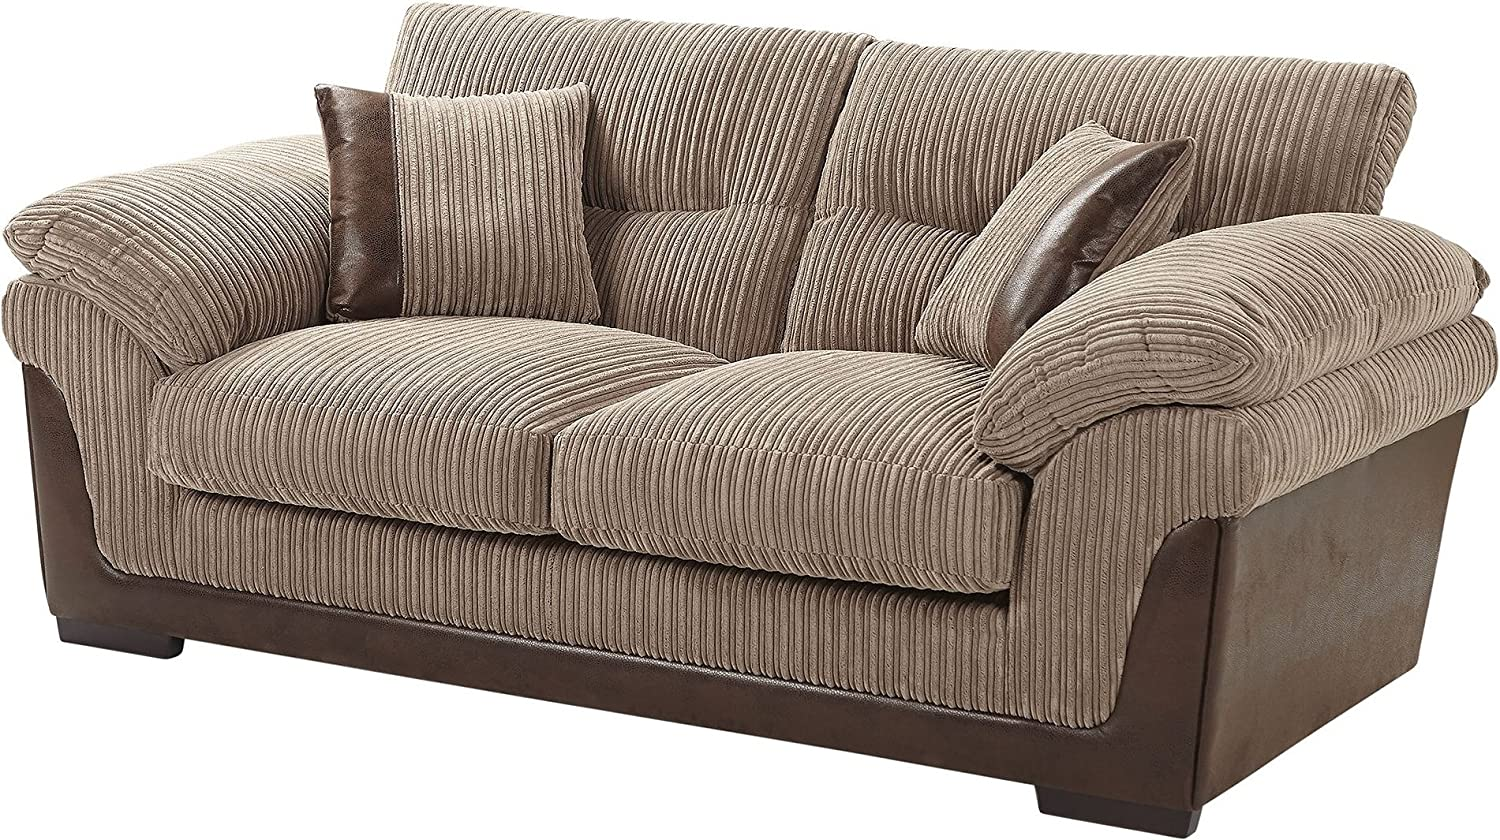 Fantastic Tesco New Kendal Jumbo Cord Faux Leather 2 5 Seater Sofa Forskolin Free Trial Chair Design Images Forskolin Free Trialorg